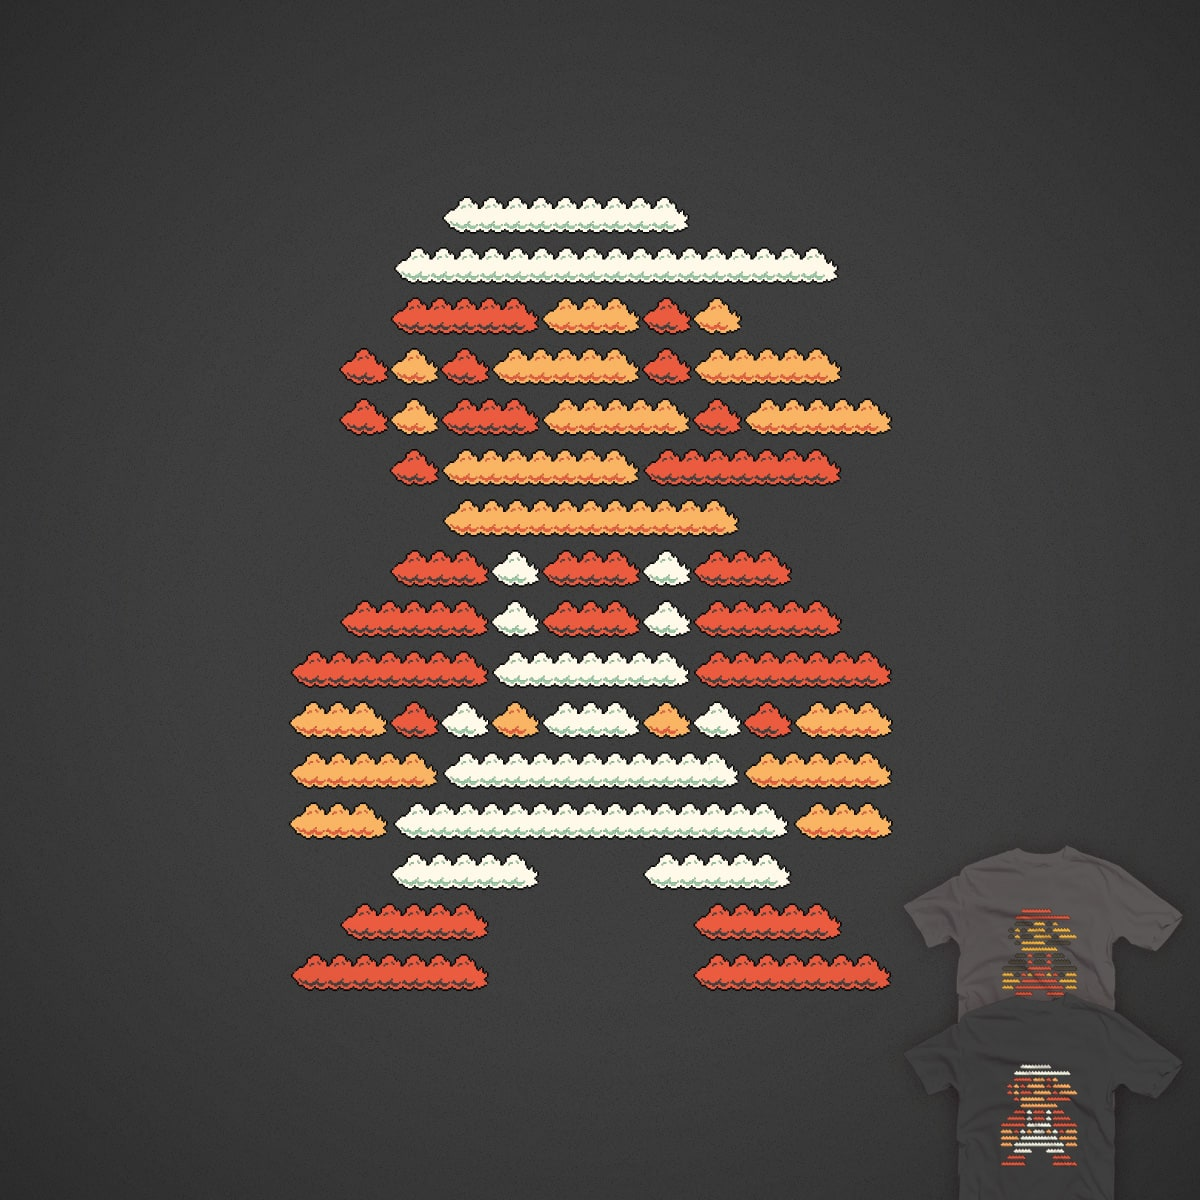 8-Bit Memory by JacquesMaes on Threadless